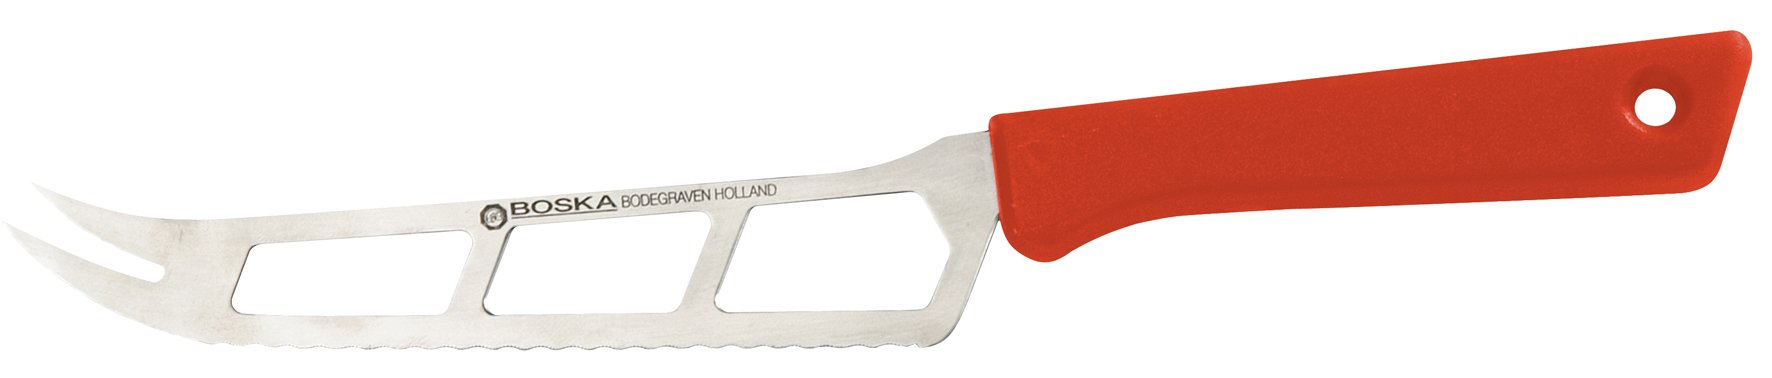 Boska Holland Professional 300361 Boska Professional Series Cheese Knife Red